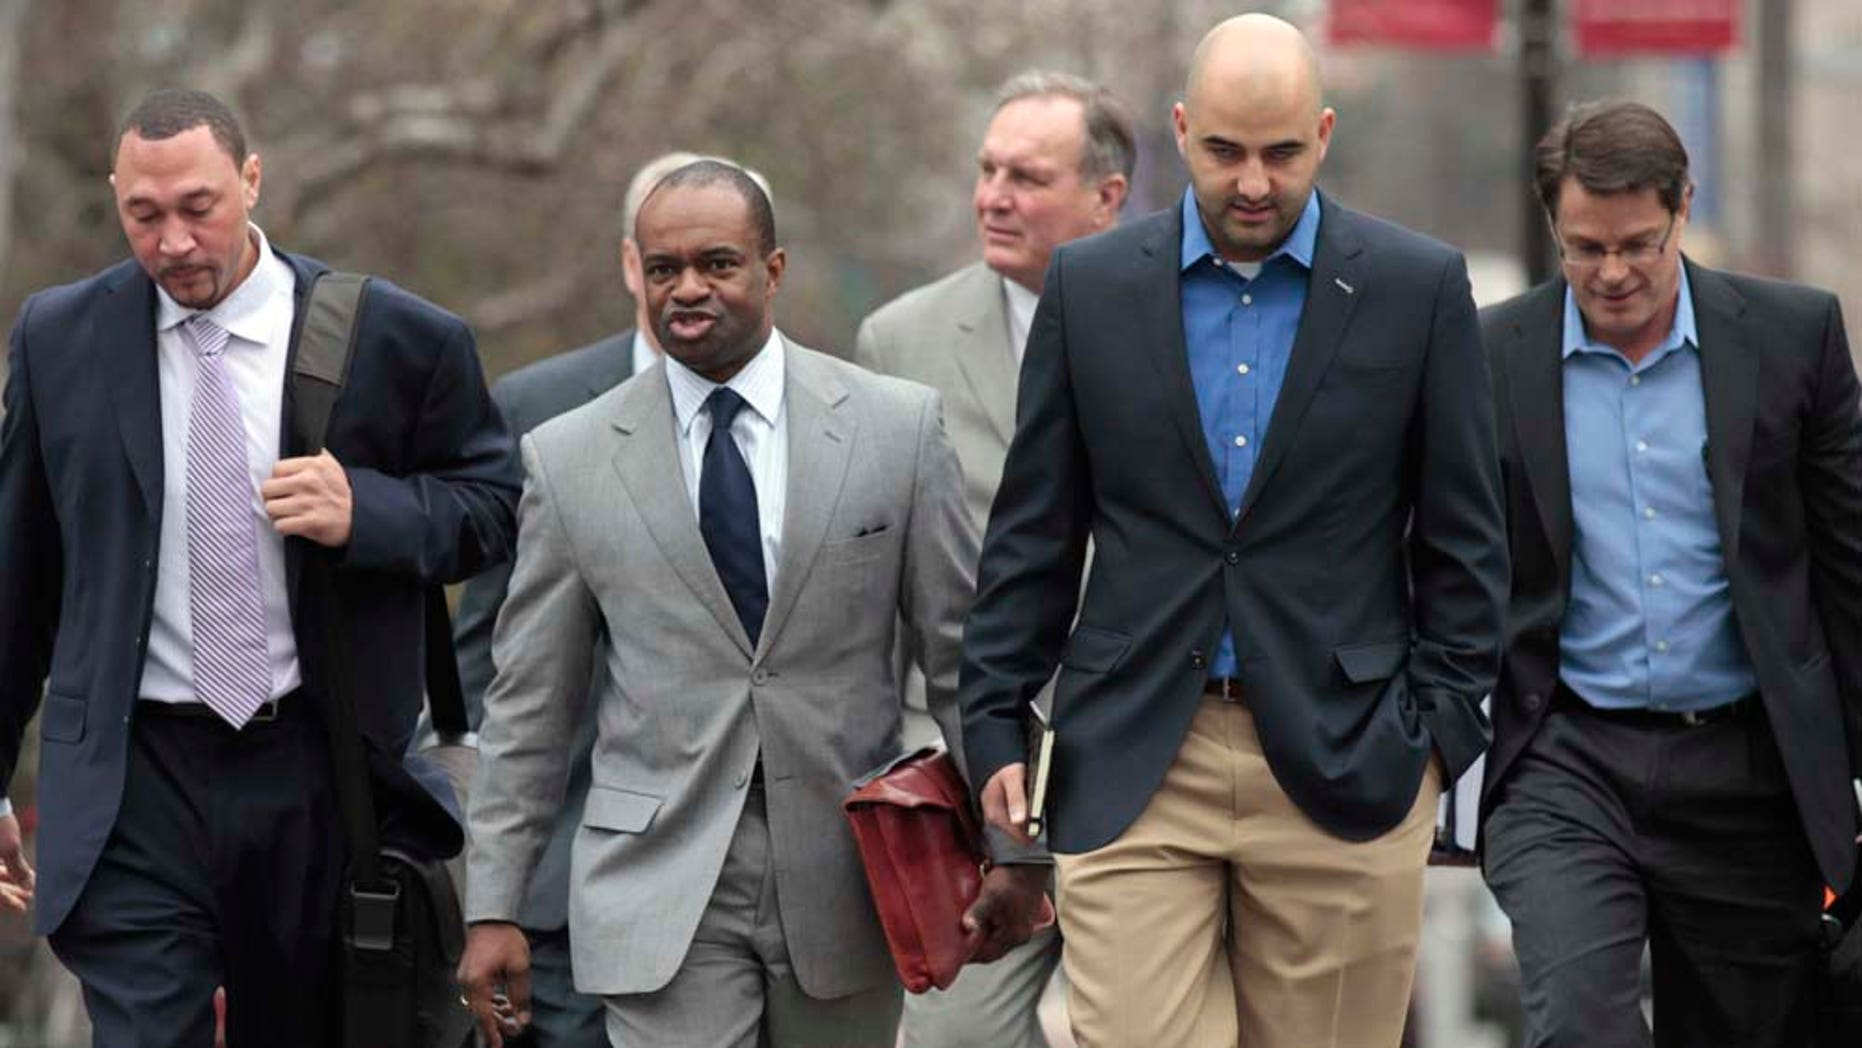 NFL Players Association (NFLPA) Executive Director DeMaurice Smith, second from left, flanked by Pittsburgh Steelers Charlie Batch, left, NFLPA spokesman George Atallah, second from right, and others, arrive for the first negotiating session involving a federal mediator, Friday, Feb. 18, 2011, in Washington. (AP Photo/Alex Brandon)